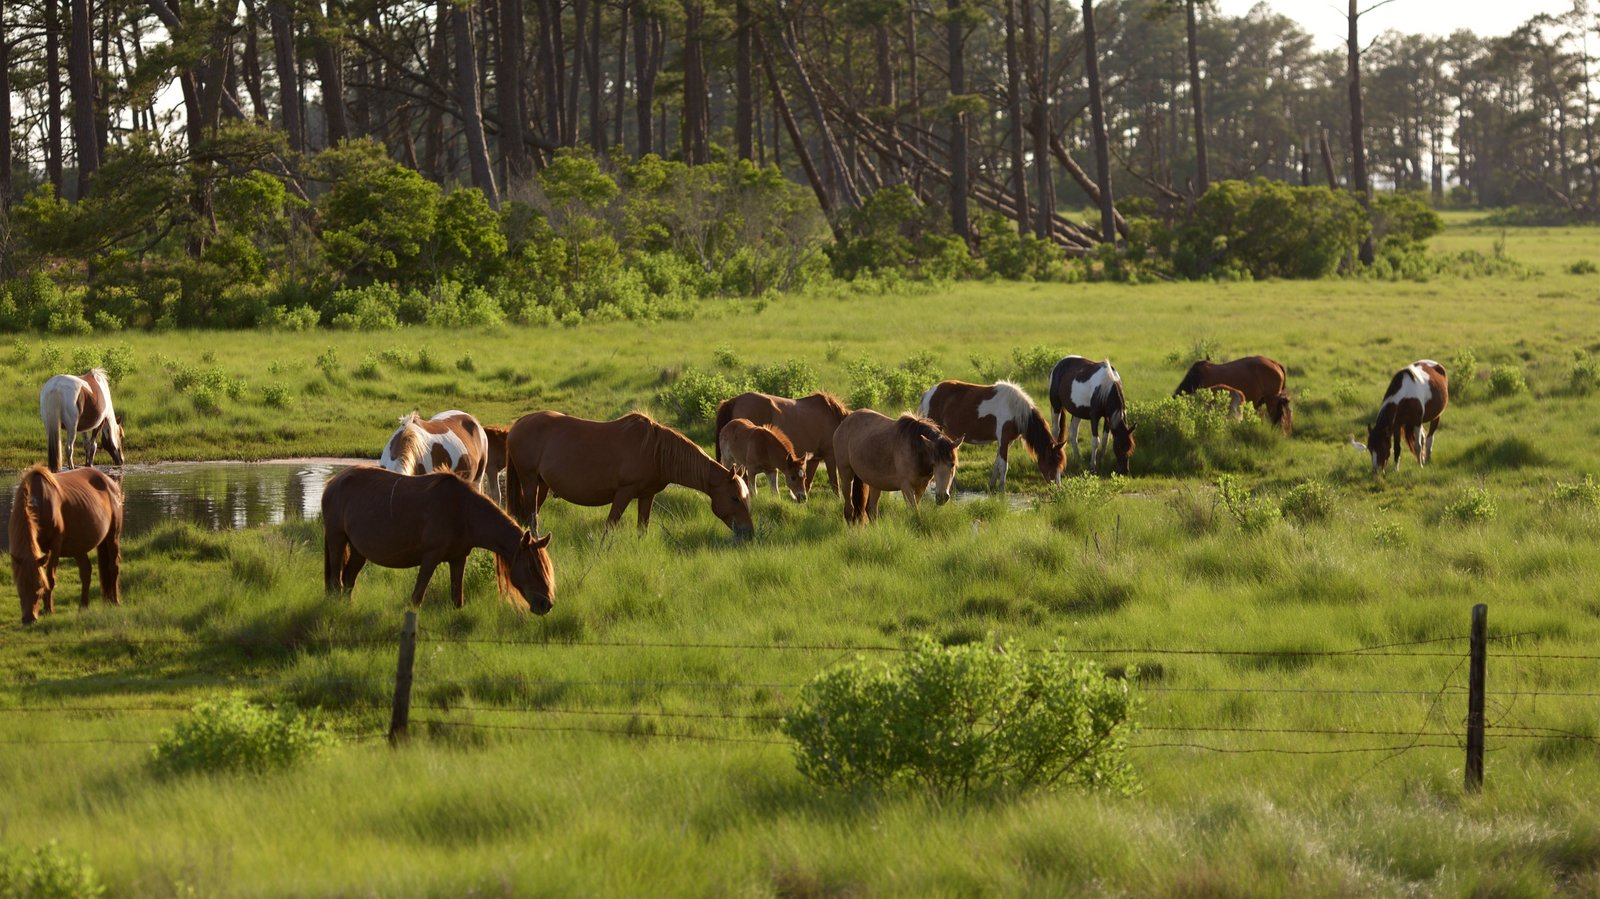 Assateague Island National Seashore featuring land animals, tranquil scenes and a pond